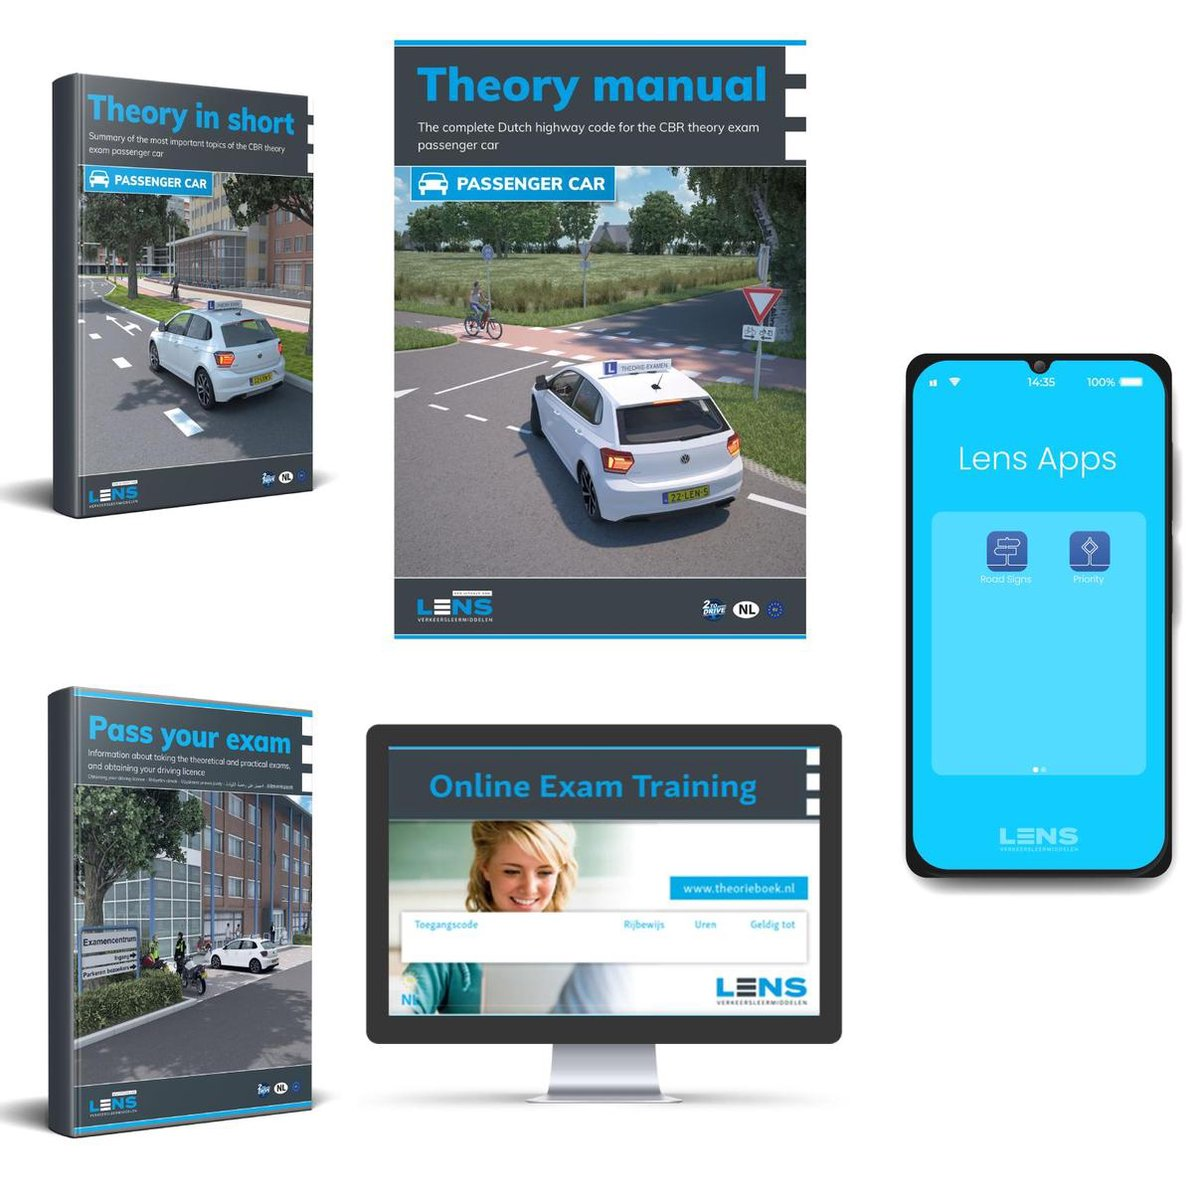 Auto Theorieboek Engels 2021 (English) - Car Theory Book in English for Dutch Driving License B + 50